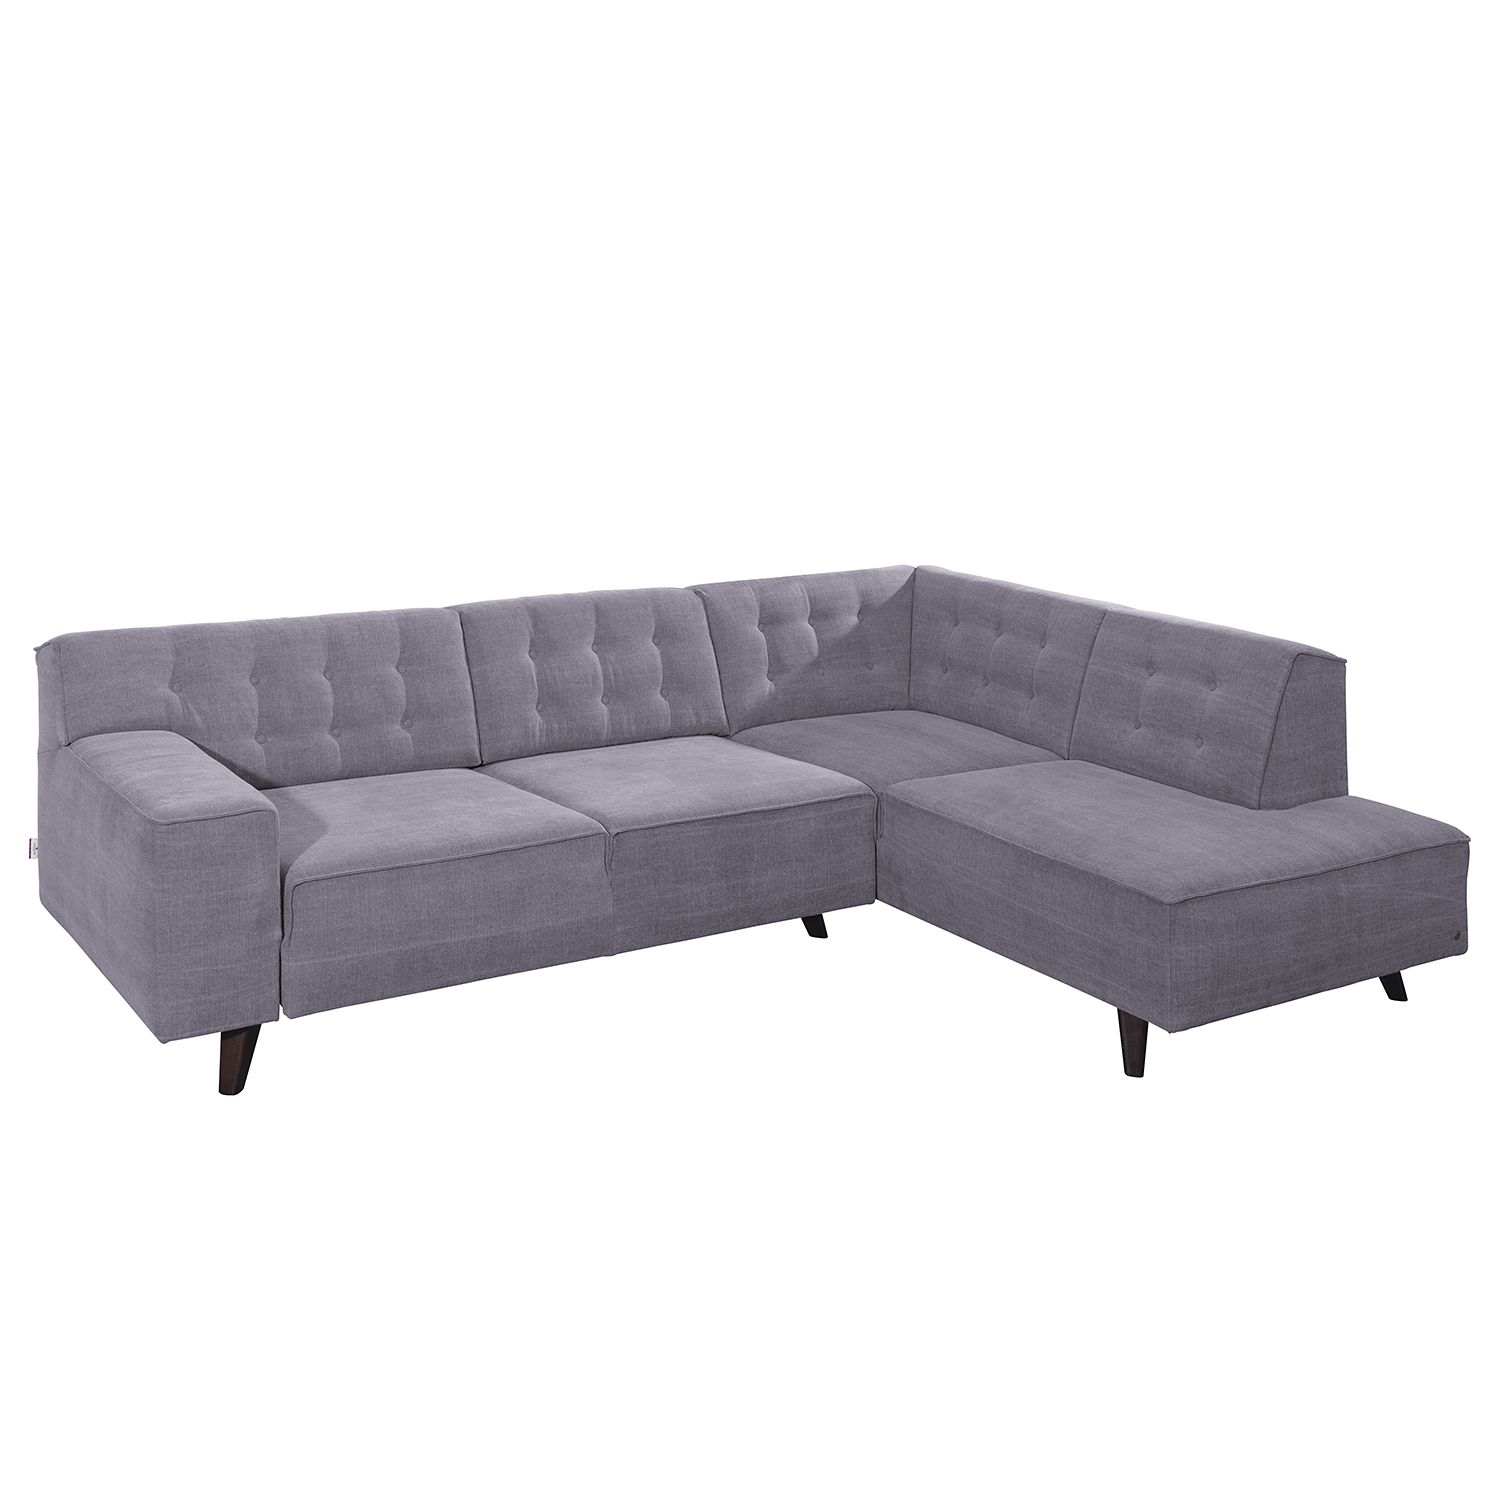 home24 Ecksofa Nordic Chic Webstoff